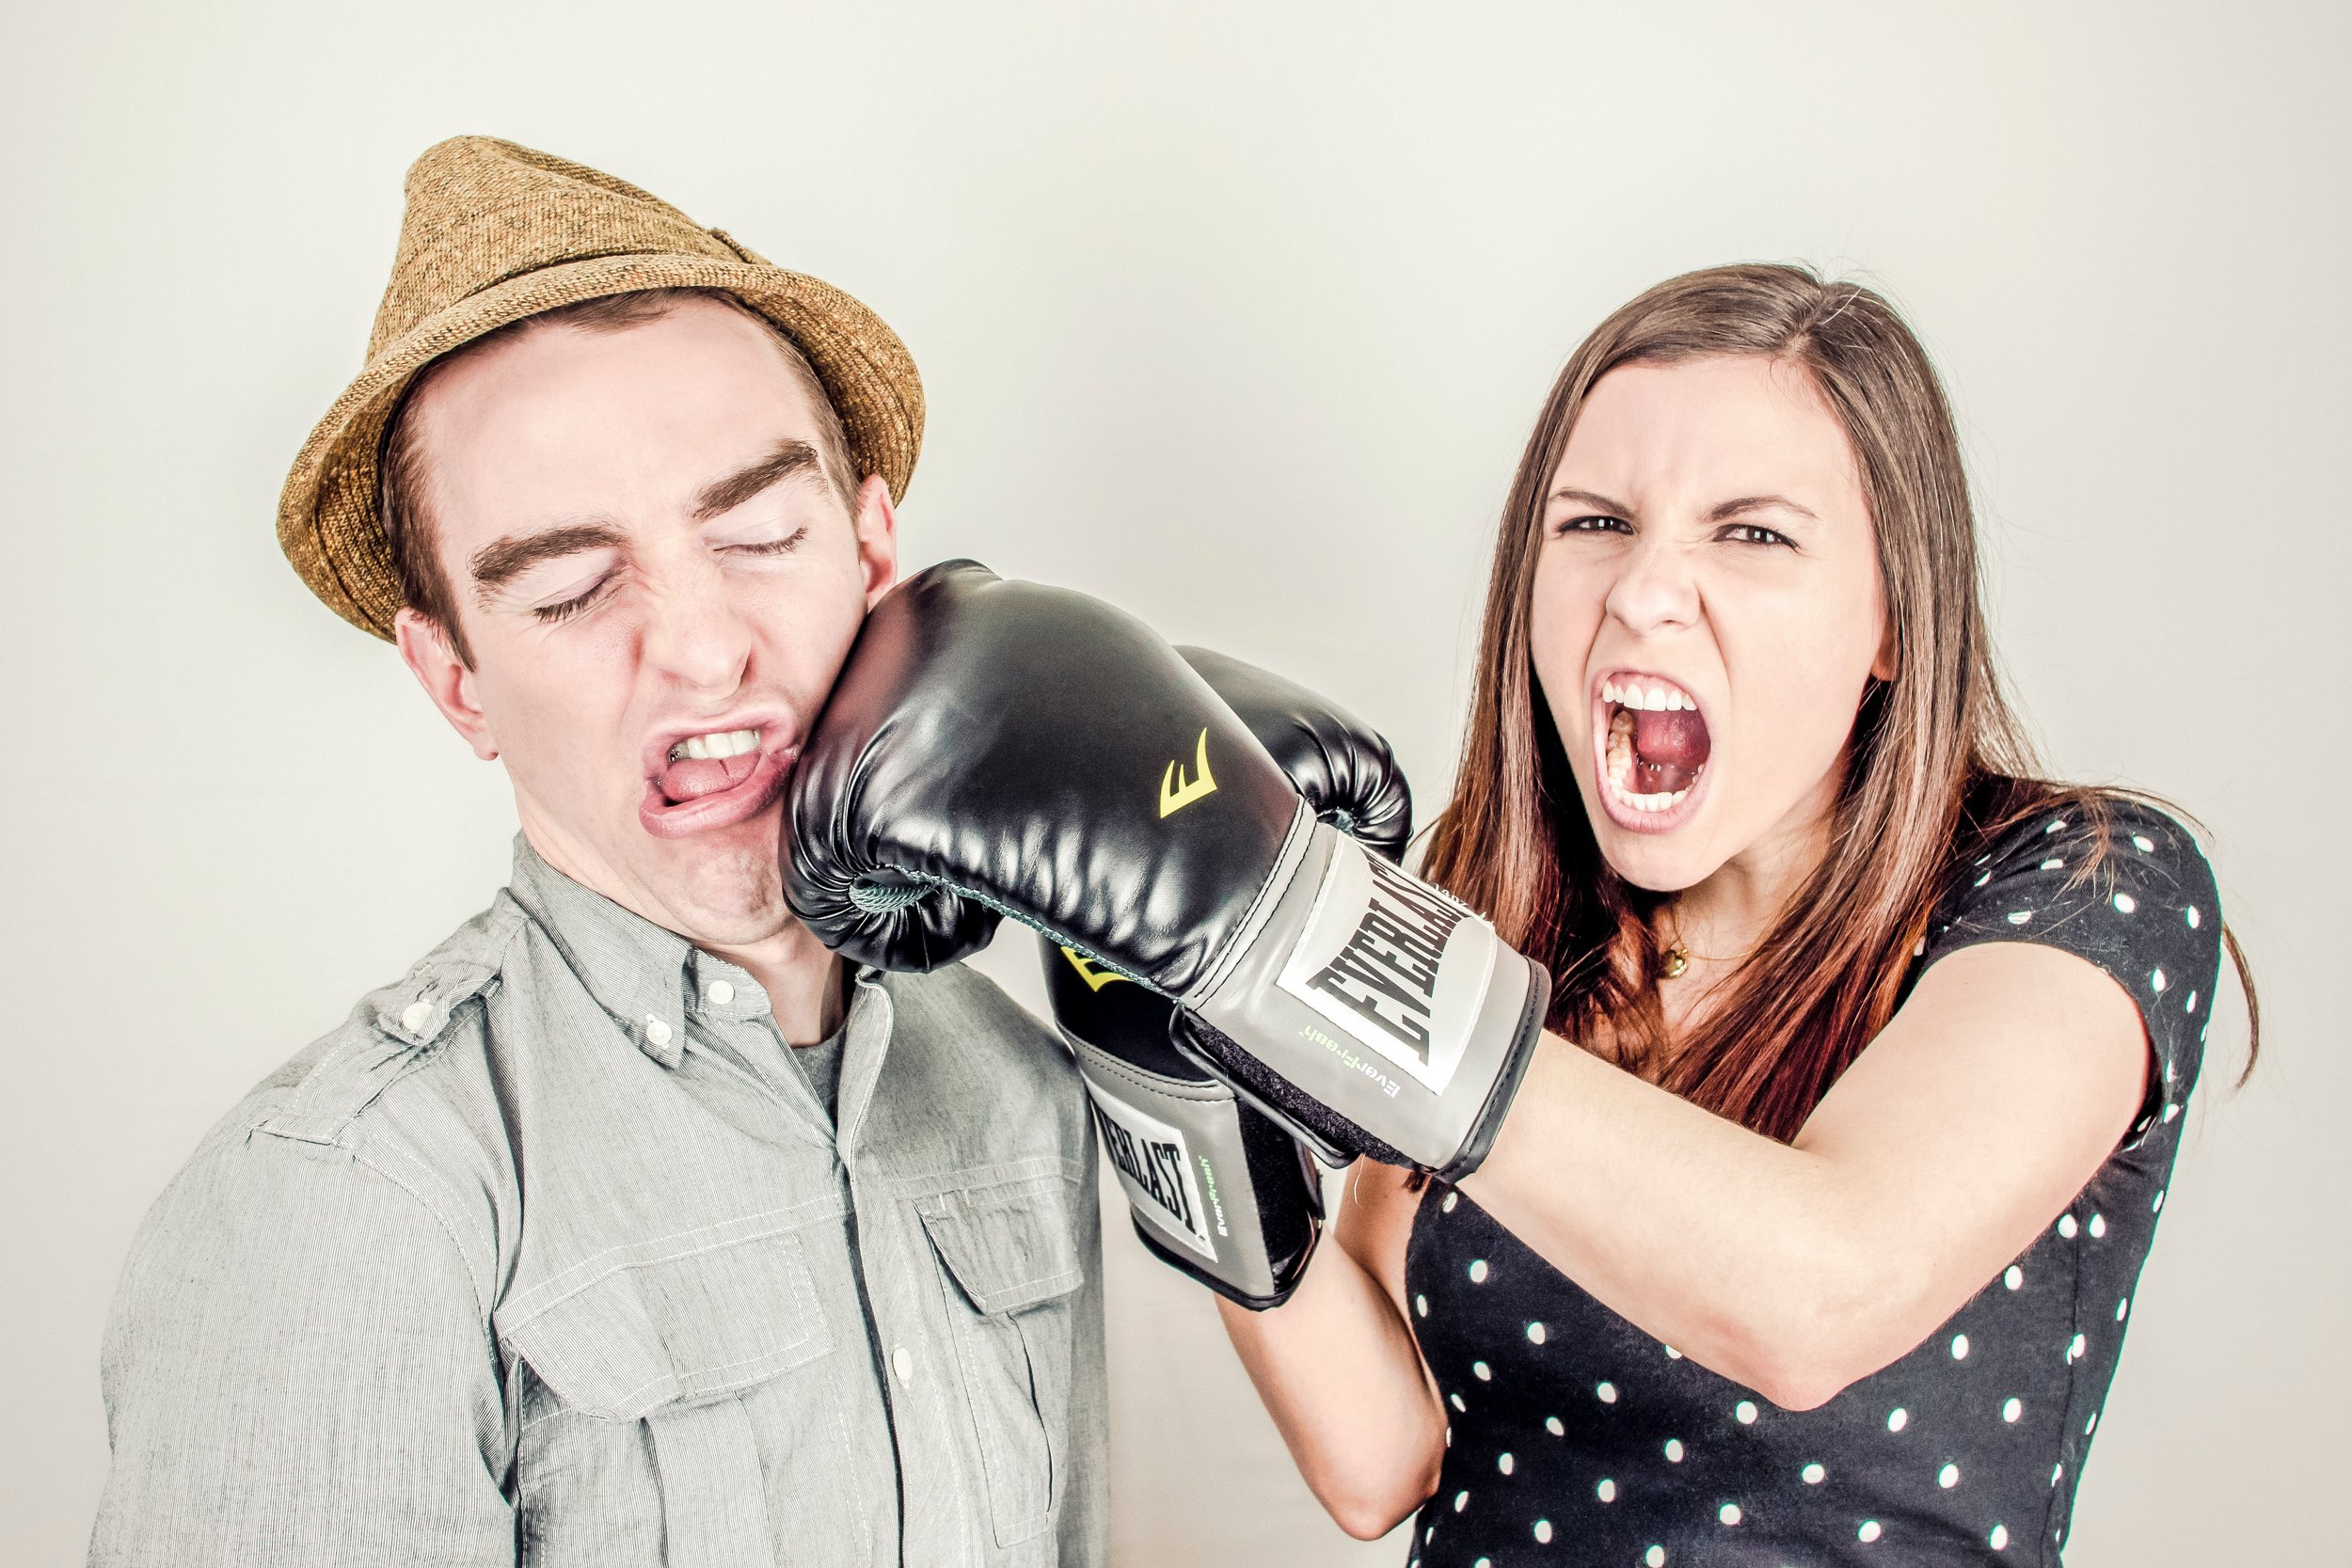 angry-argument-attack-343.jpg